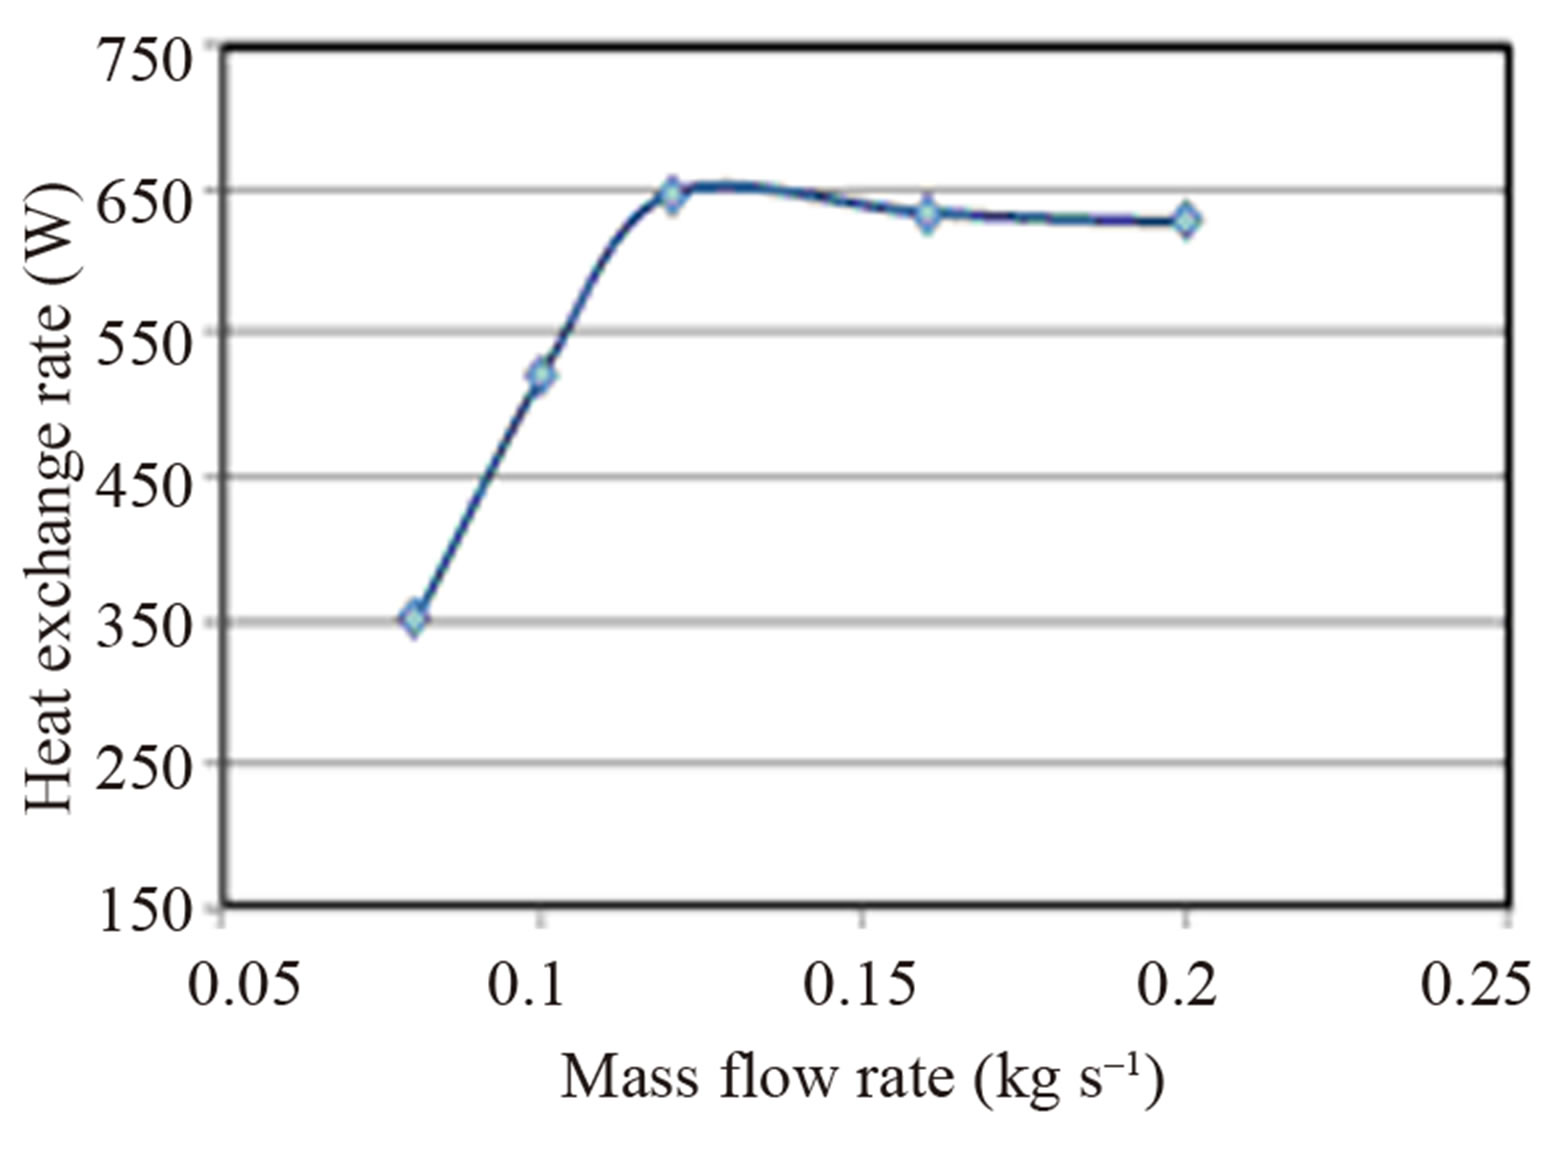 evaporation and mass flow rate The evaporation mass flow rate (mass per time) is given in all cases by m evap,j =n j m j a (4-46) a log mean mol fraction (y am ) and a log mean partial pressure ratio (p am ) are defined as.